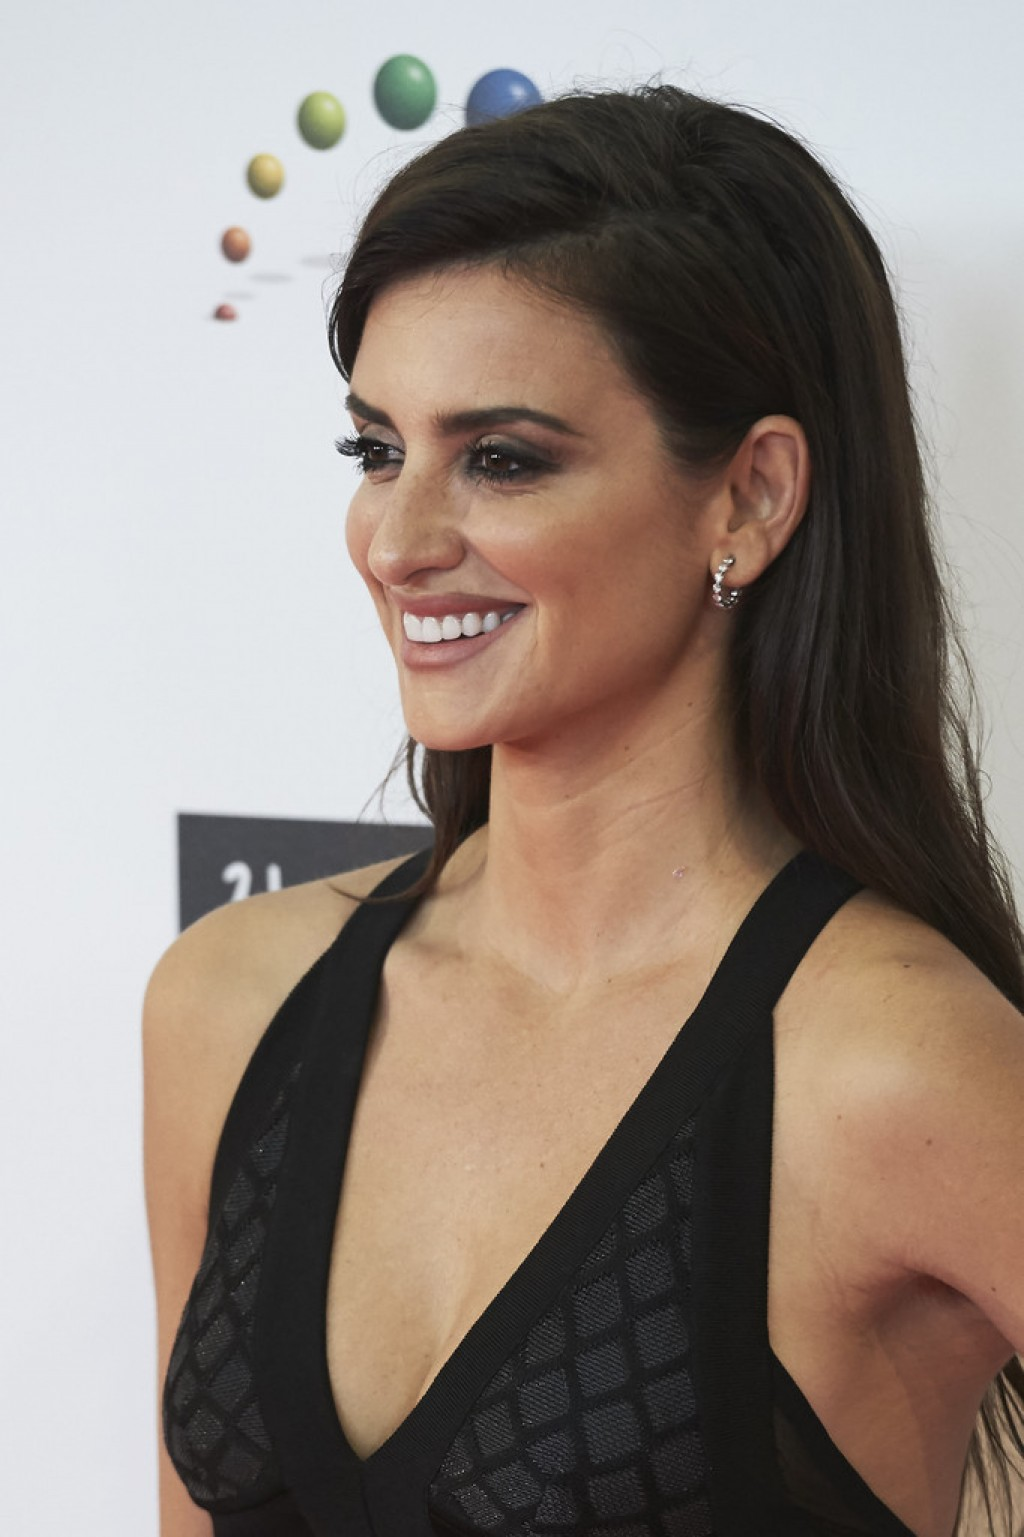 penelope-cruz-jose-maria-forque-awards-closeup-1024x1537